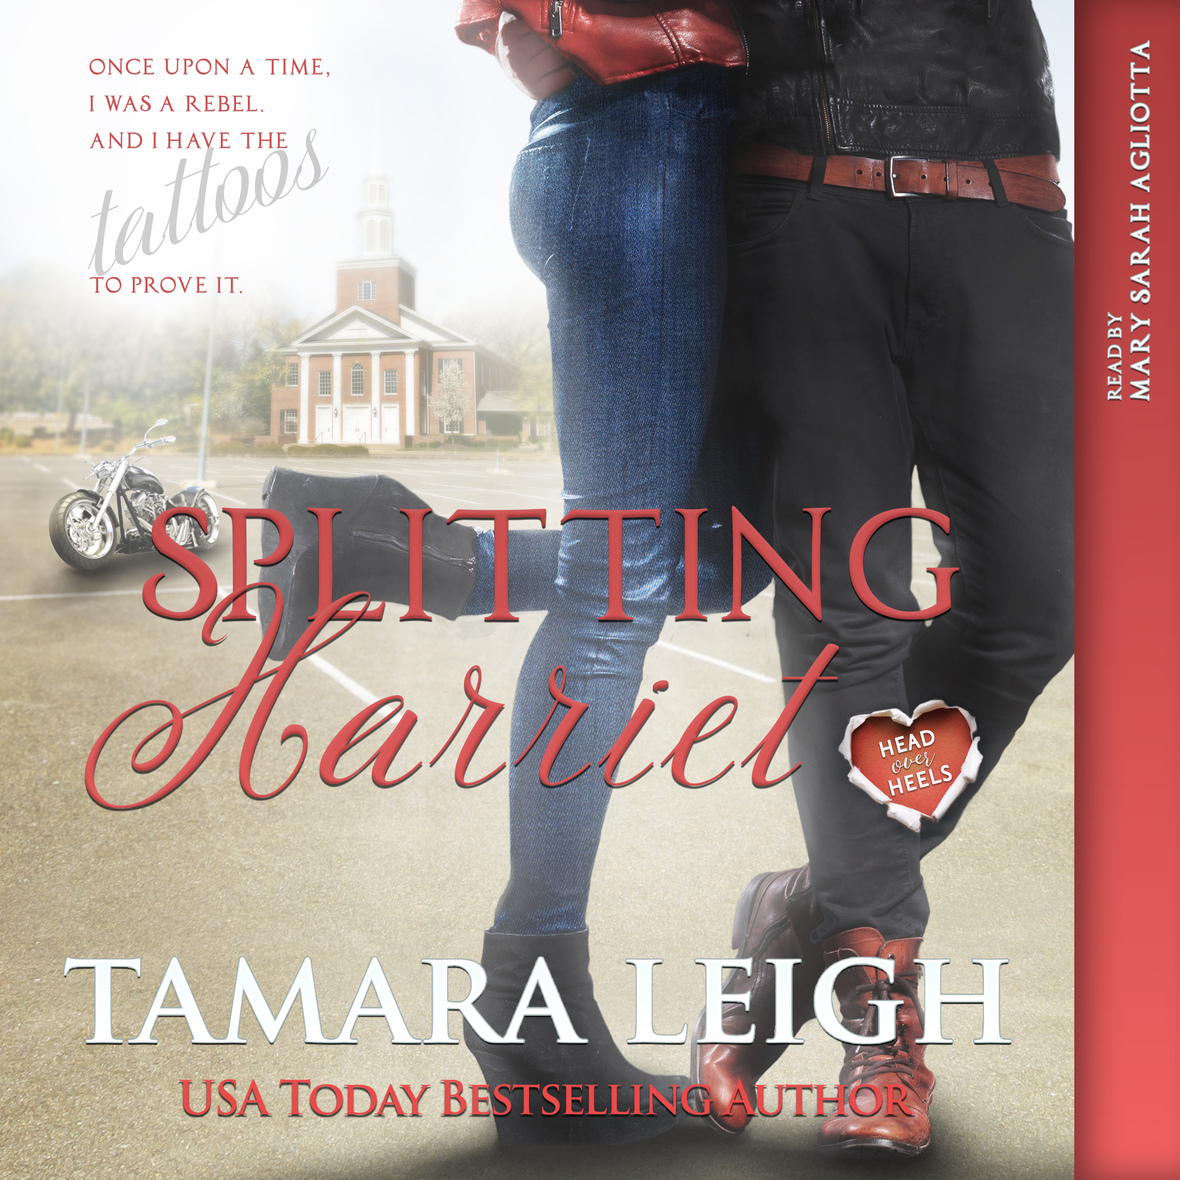 CLBD2018 Tamara Leigh HOH 03 SplittingHarriet AUDIO FINAL